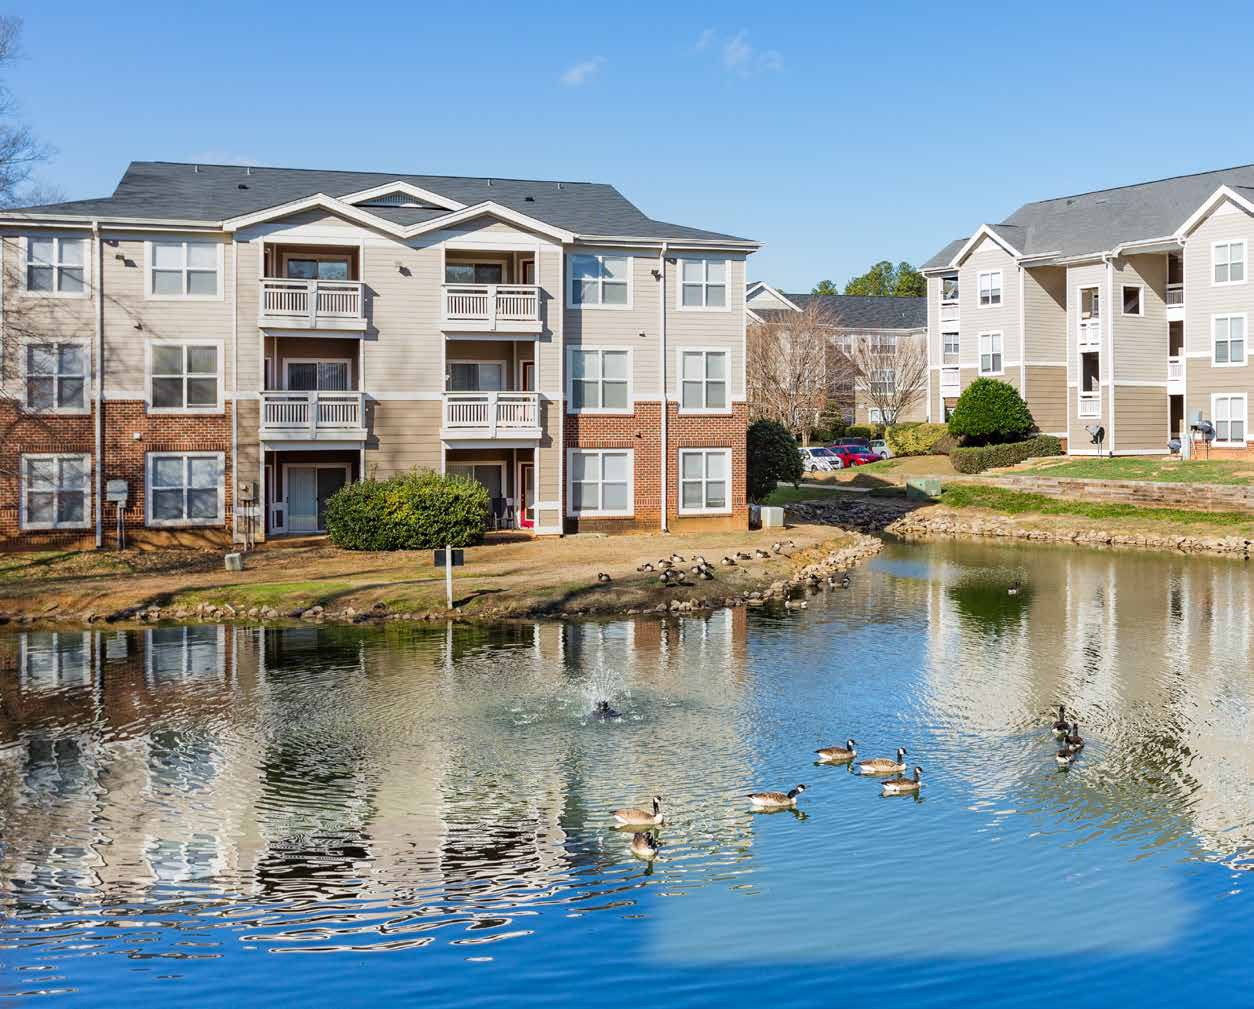 110 Apartments in Raleigh, NC (AVAIL now)